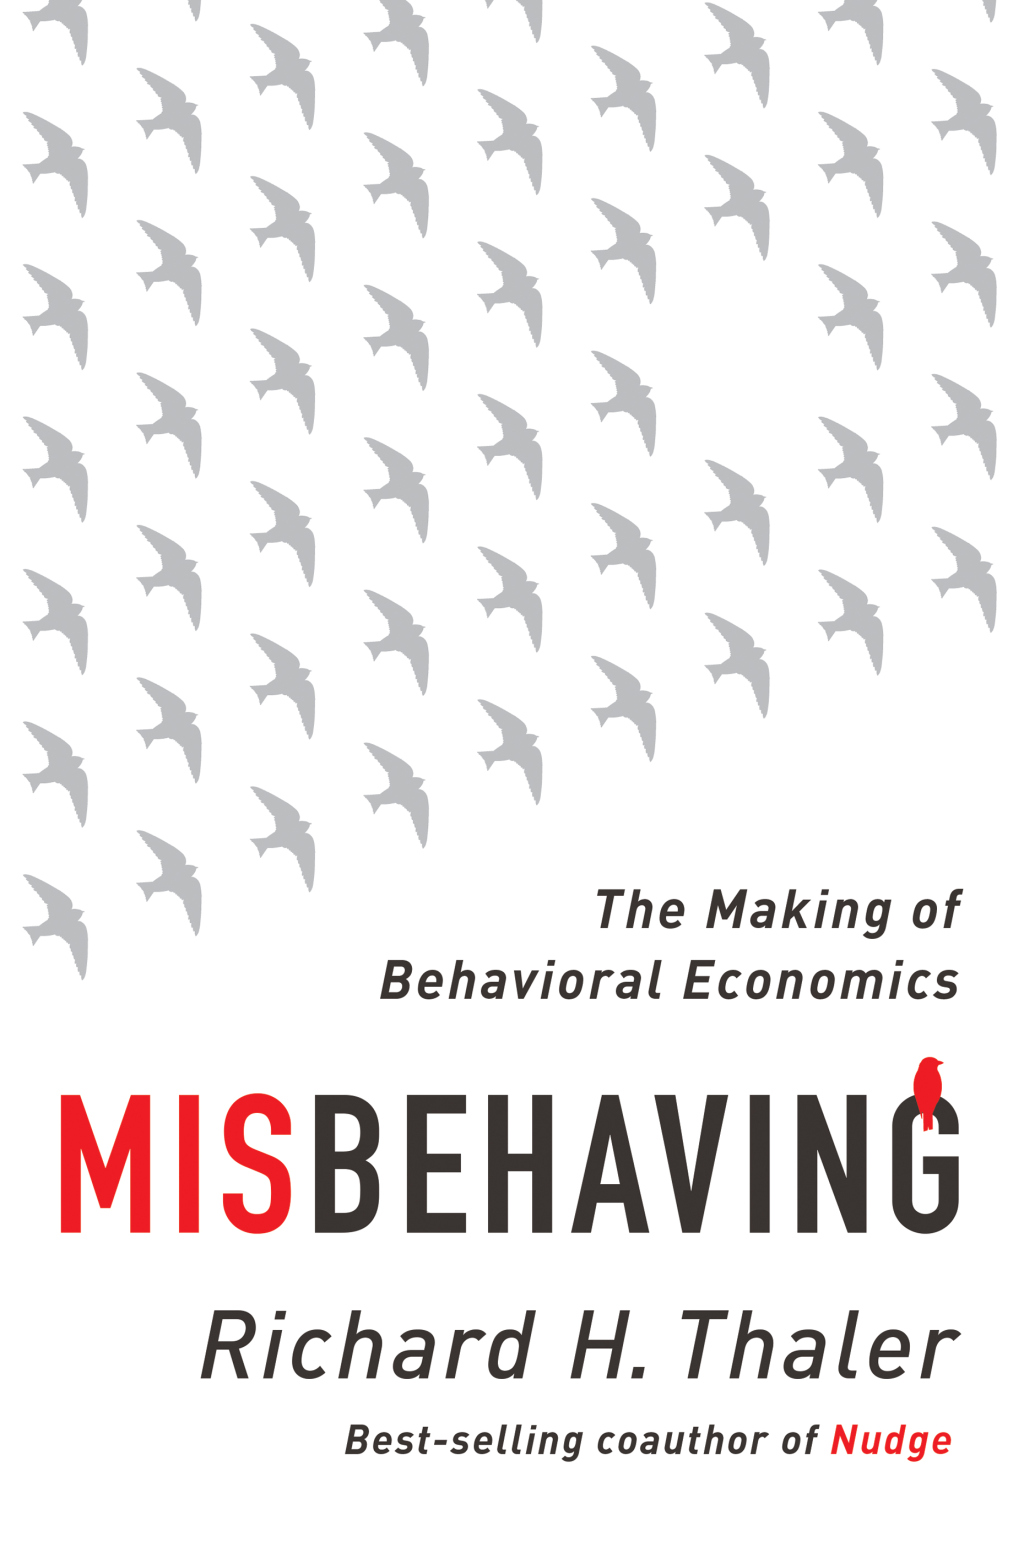 richard-thaler-misbehaving-book-cover